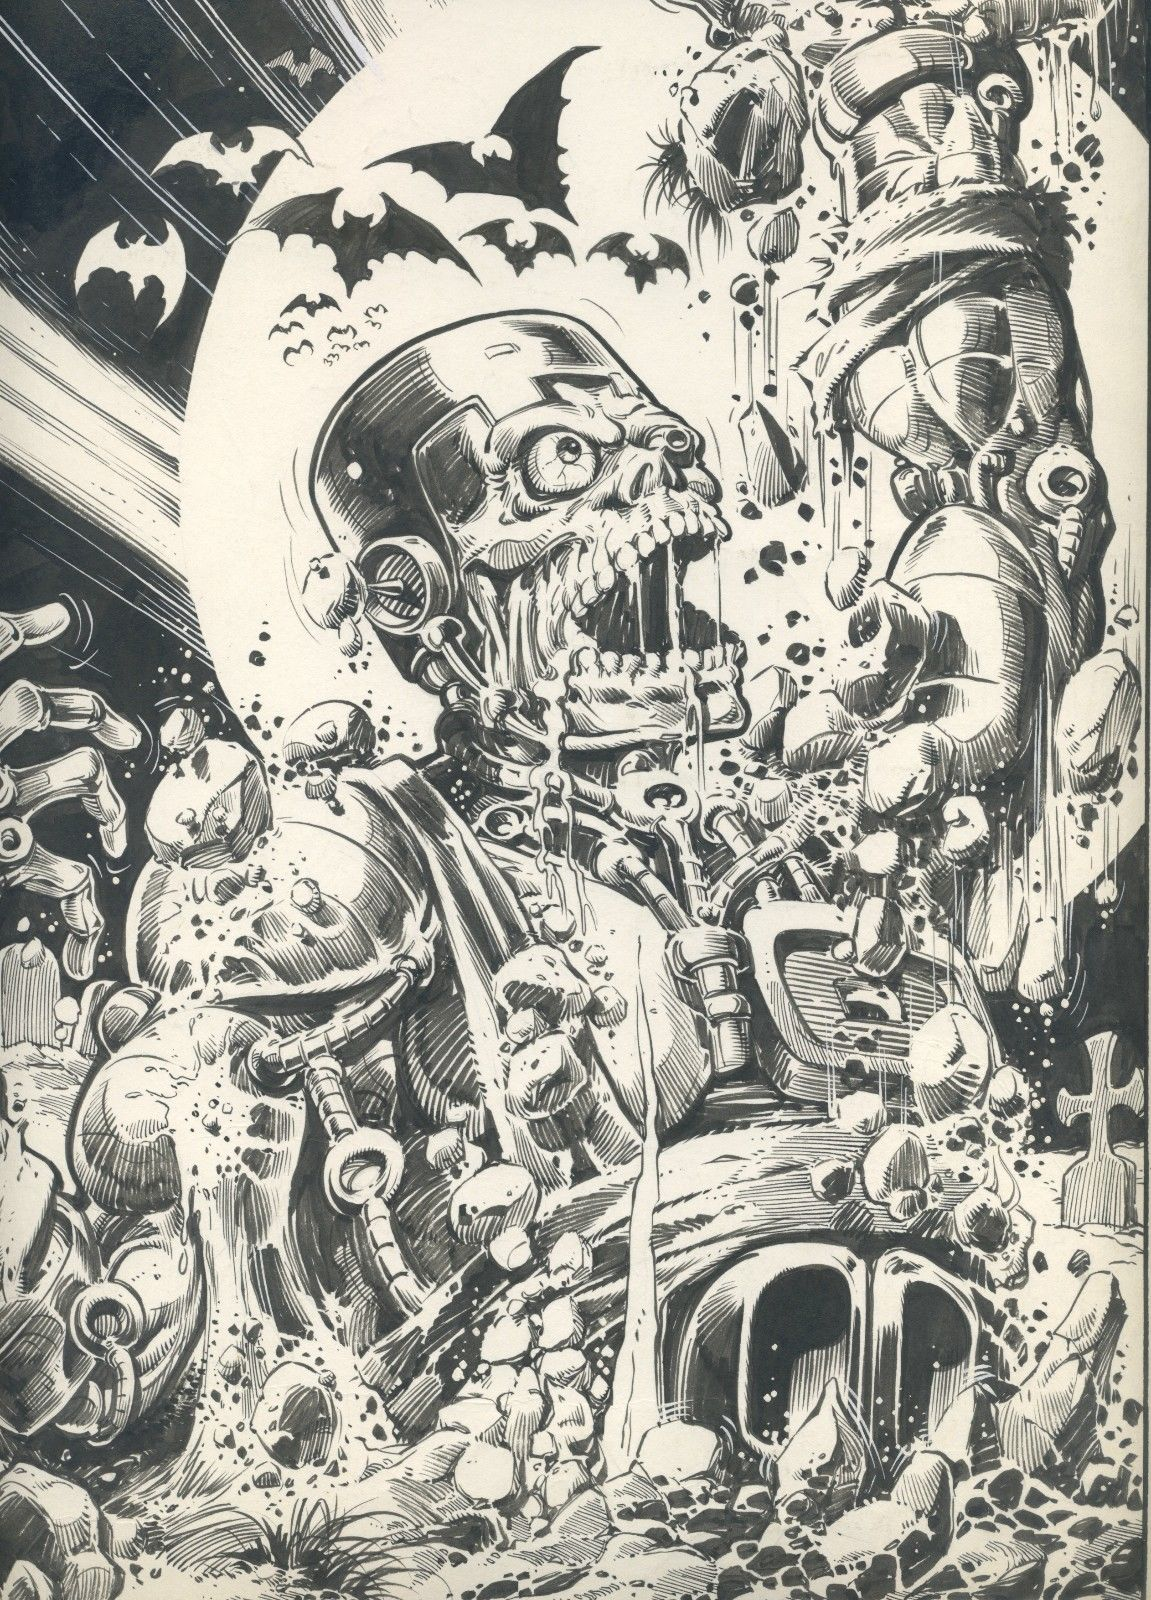 2000AD Prog 74 Pin-Up Art - Harlem Heroe Artie Gruber DETAIL